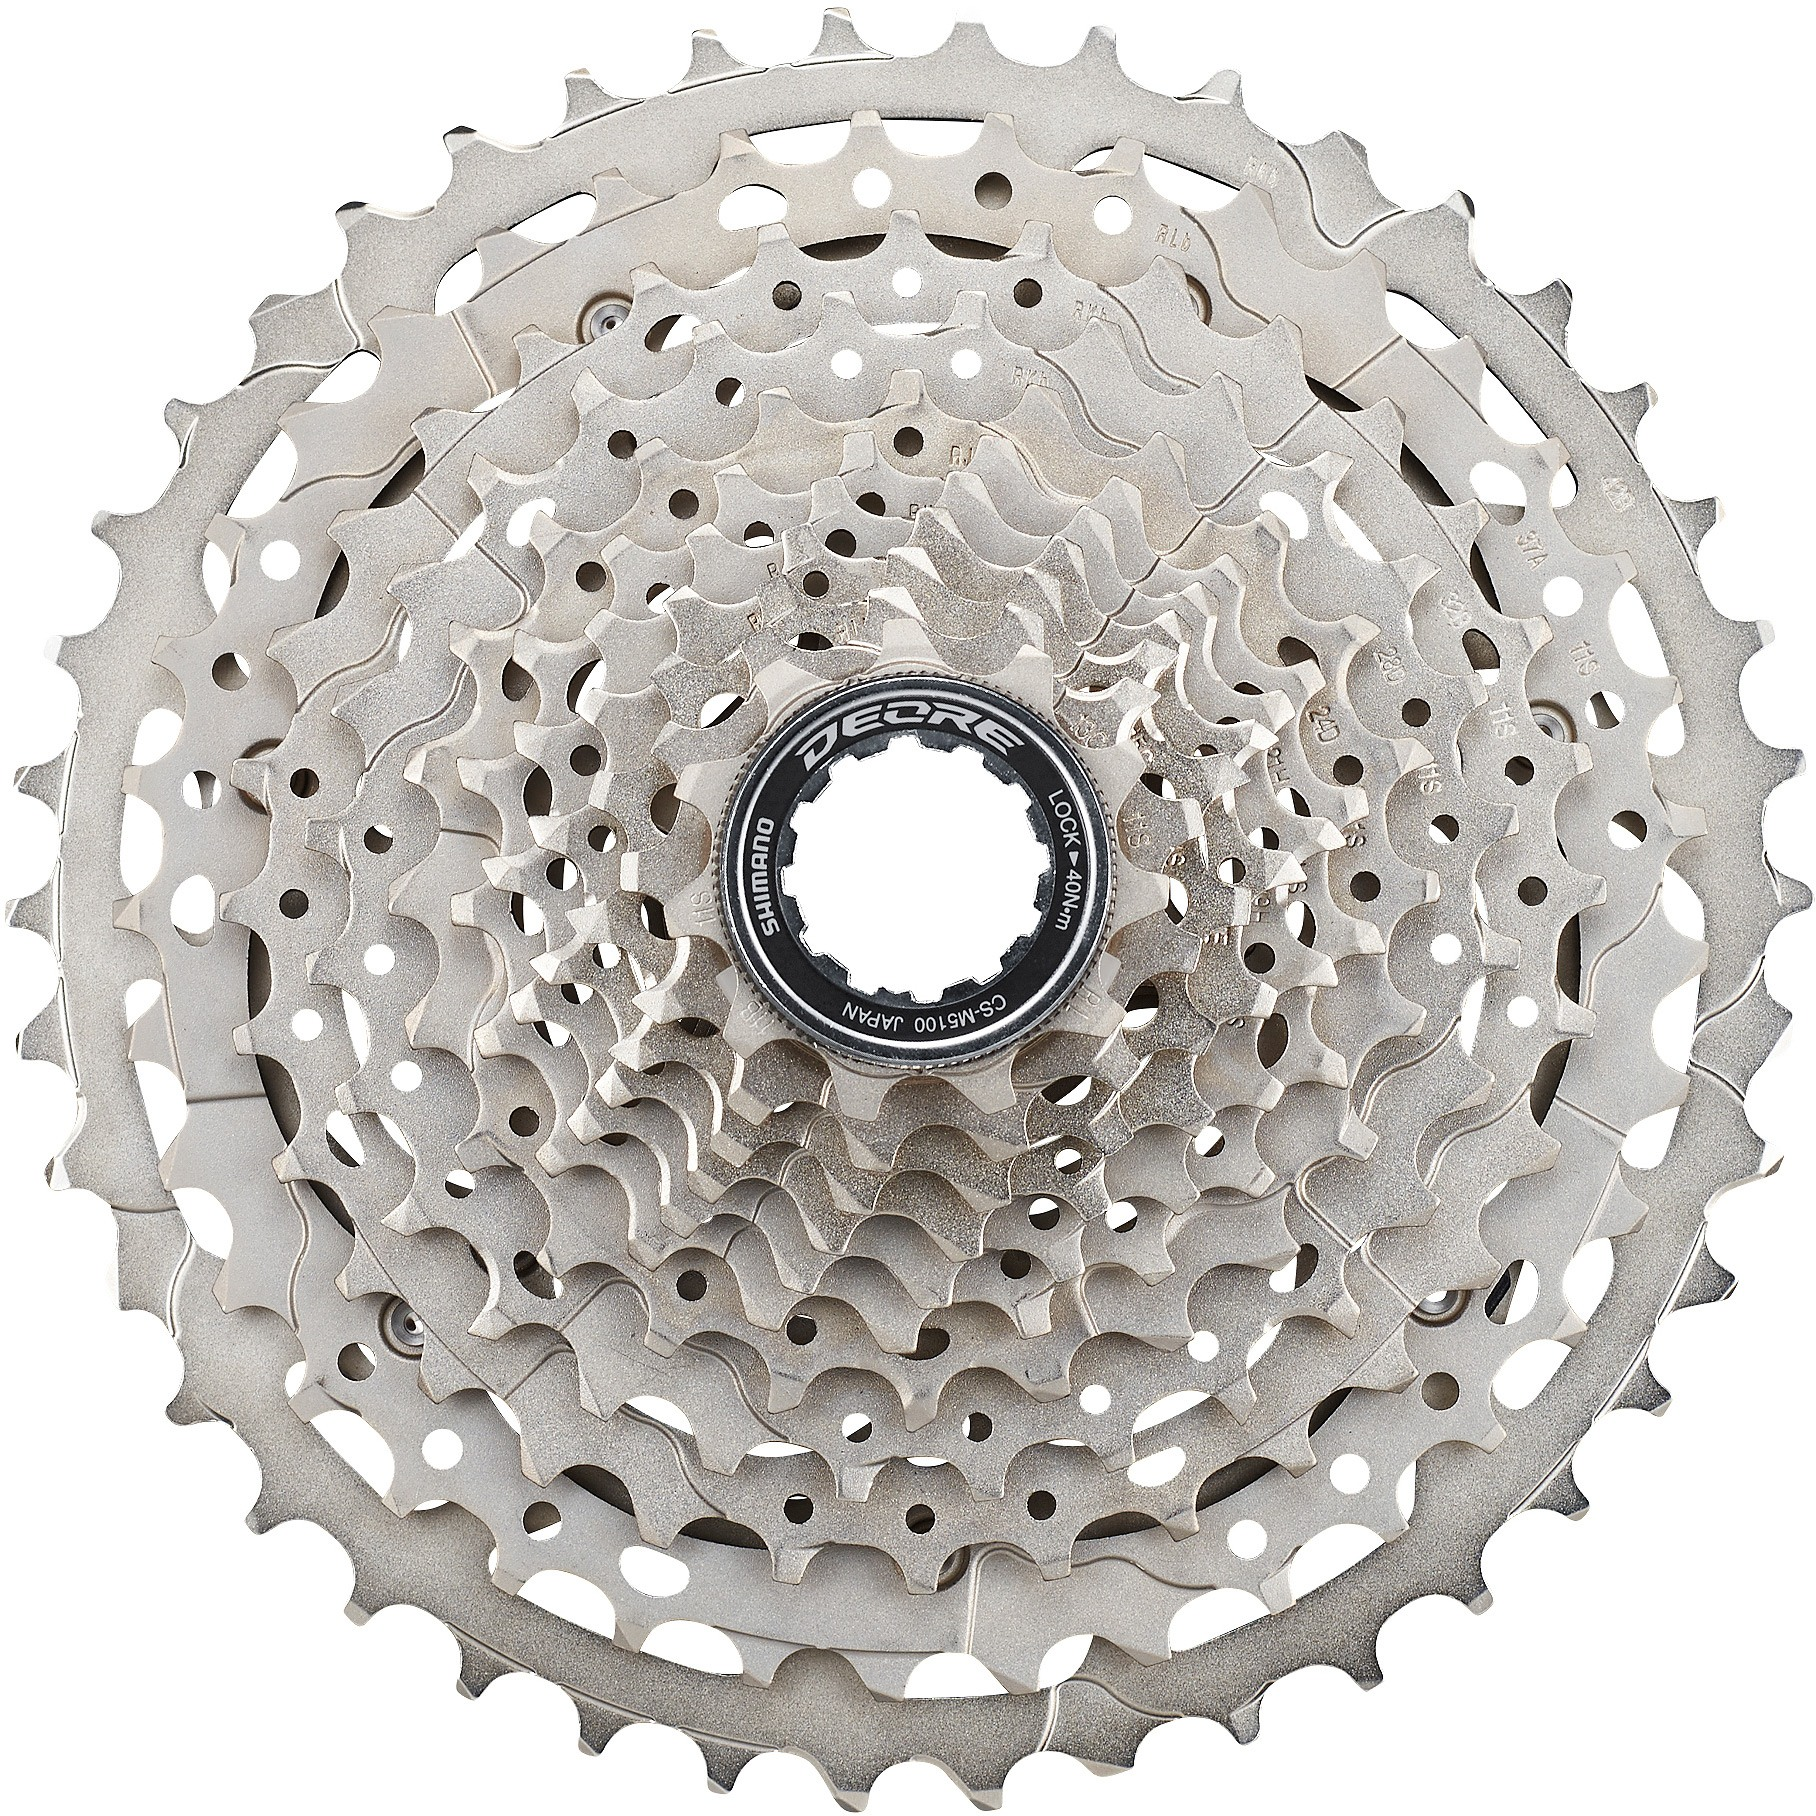 CS-M5100 Deore 11-speed cassette, 11-42T